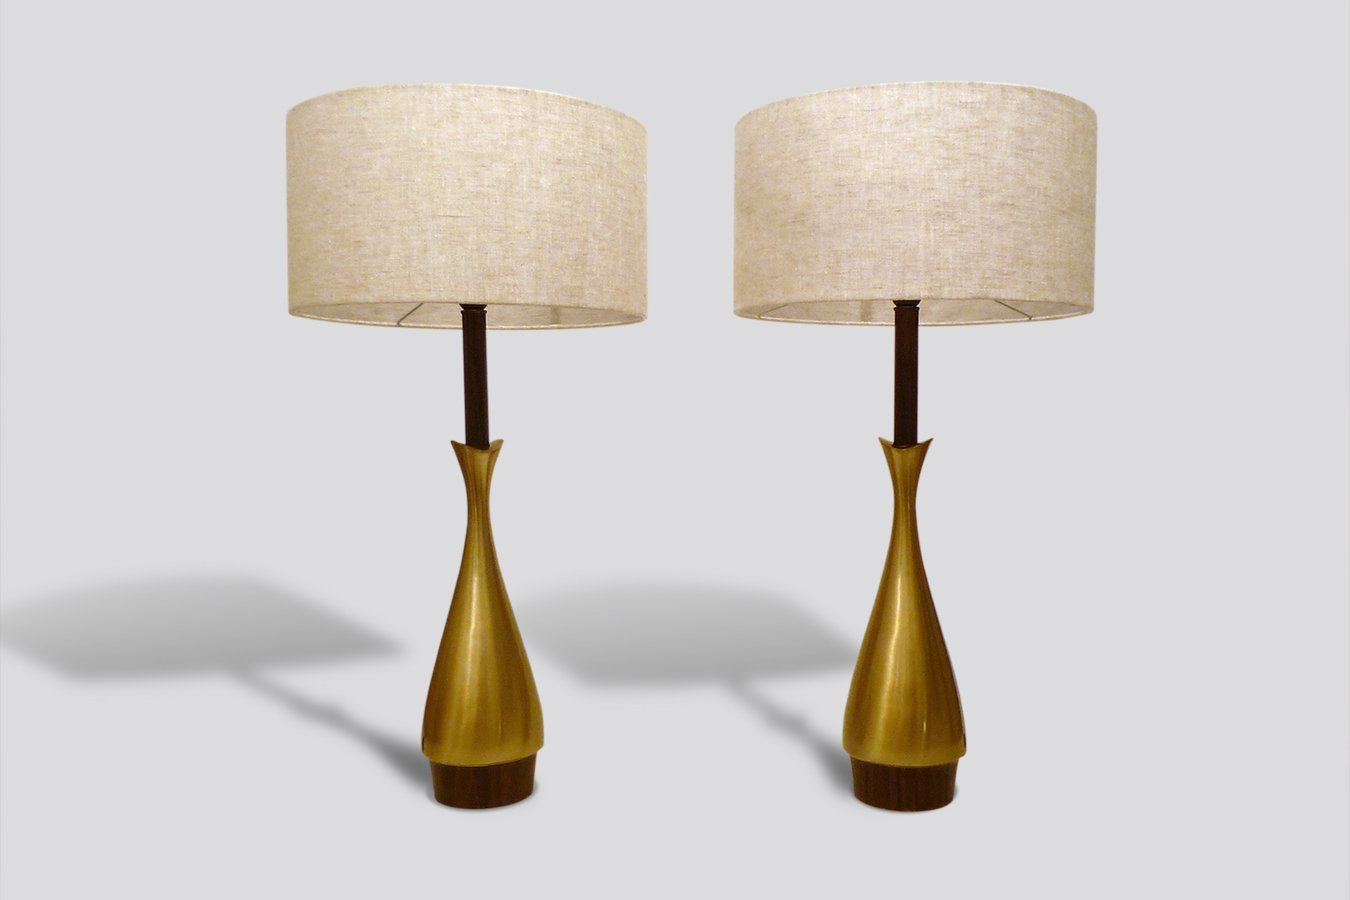 French Matt Brass Table Lamps 1960s Set of 2 for sale at Pamono